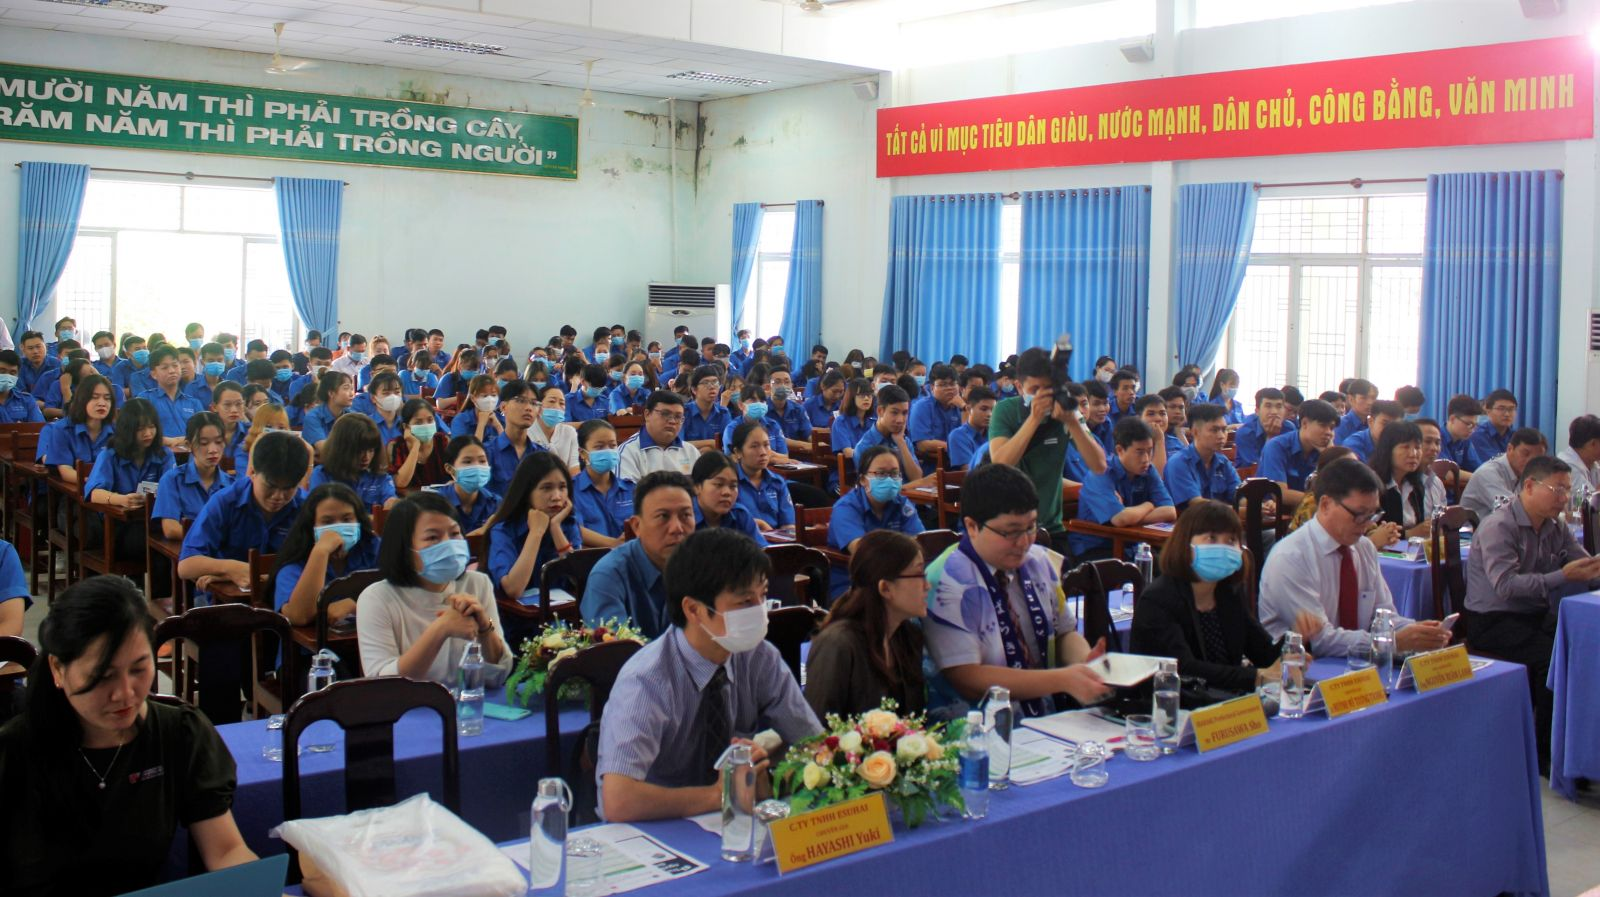 More than 200 students from Long An College participated in the seminar on orientation and Japanese job recruitment